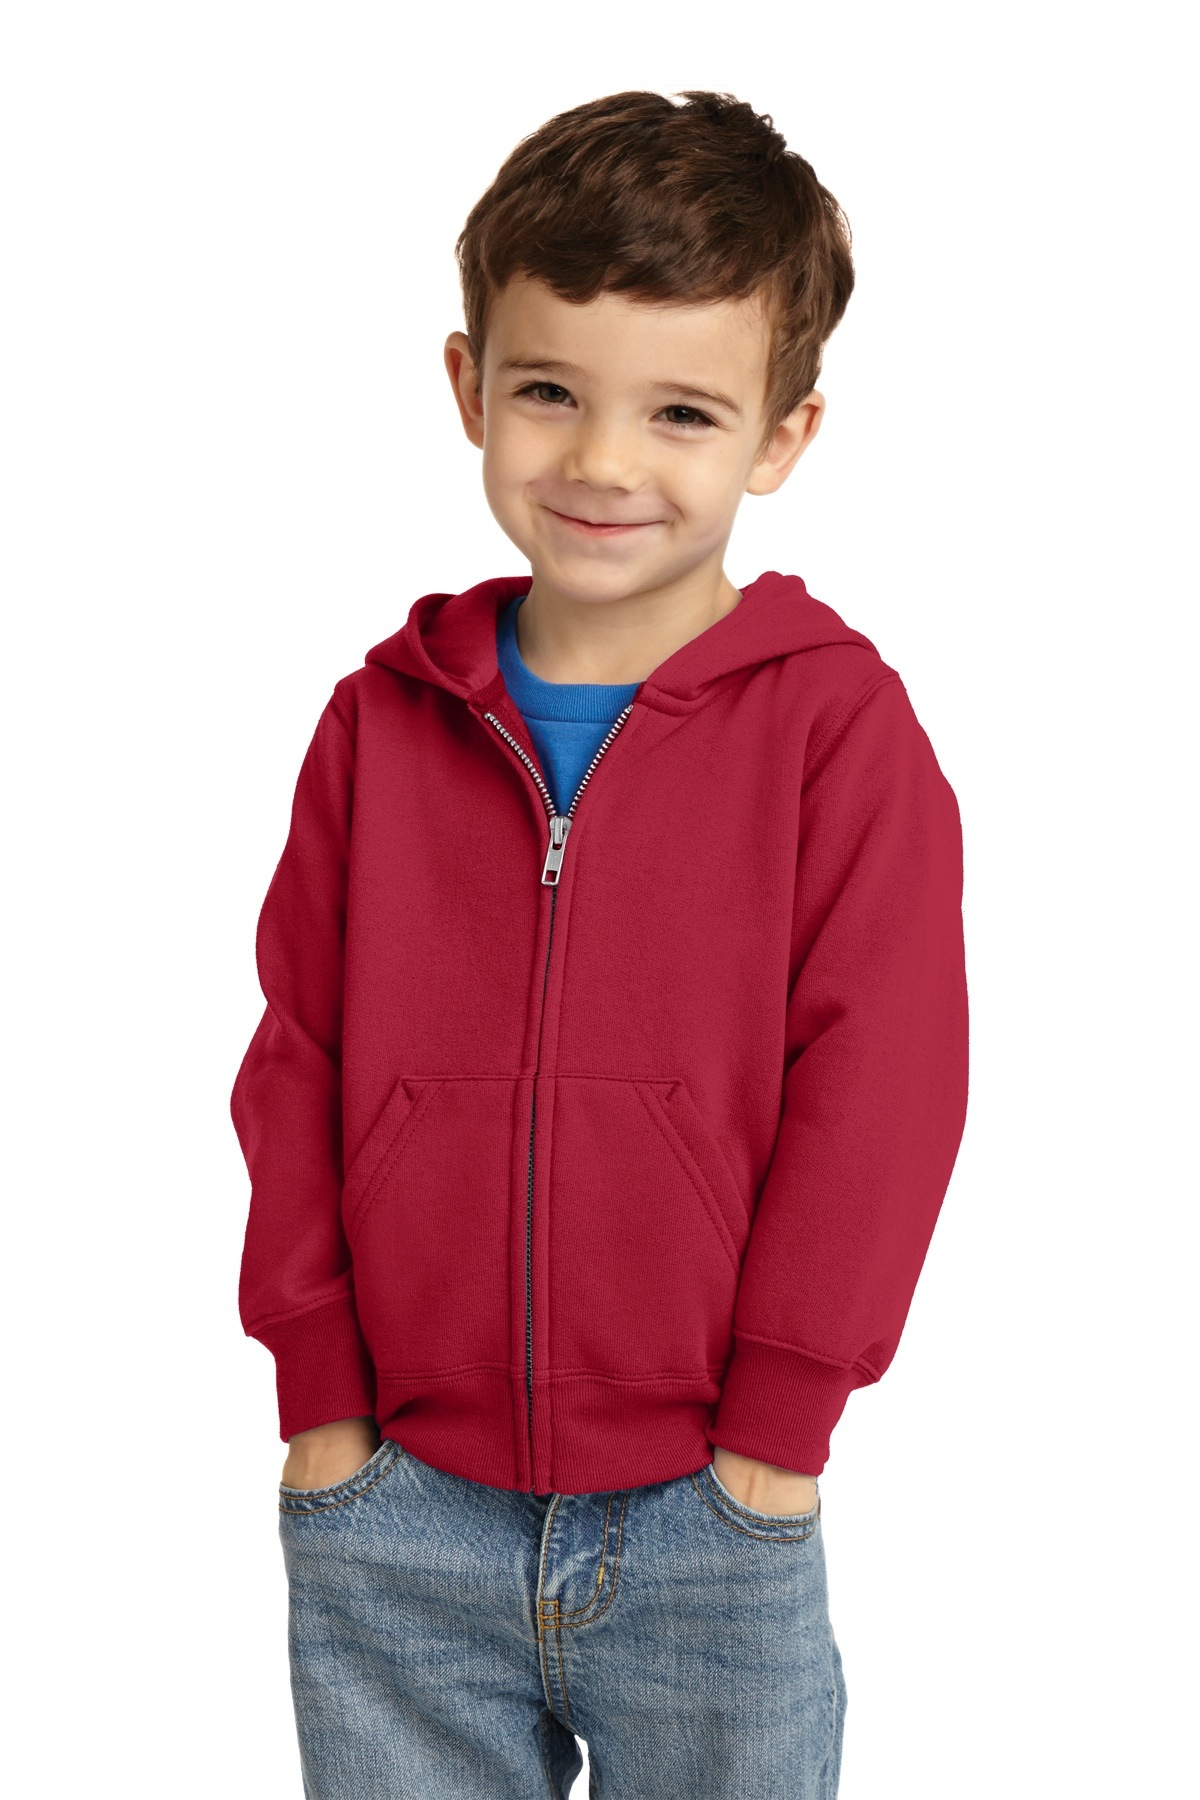 CAR78TZH Precious Cargo Toddler Full-Zip Hooded Sweatshirt